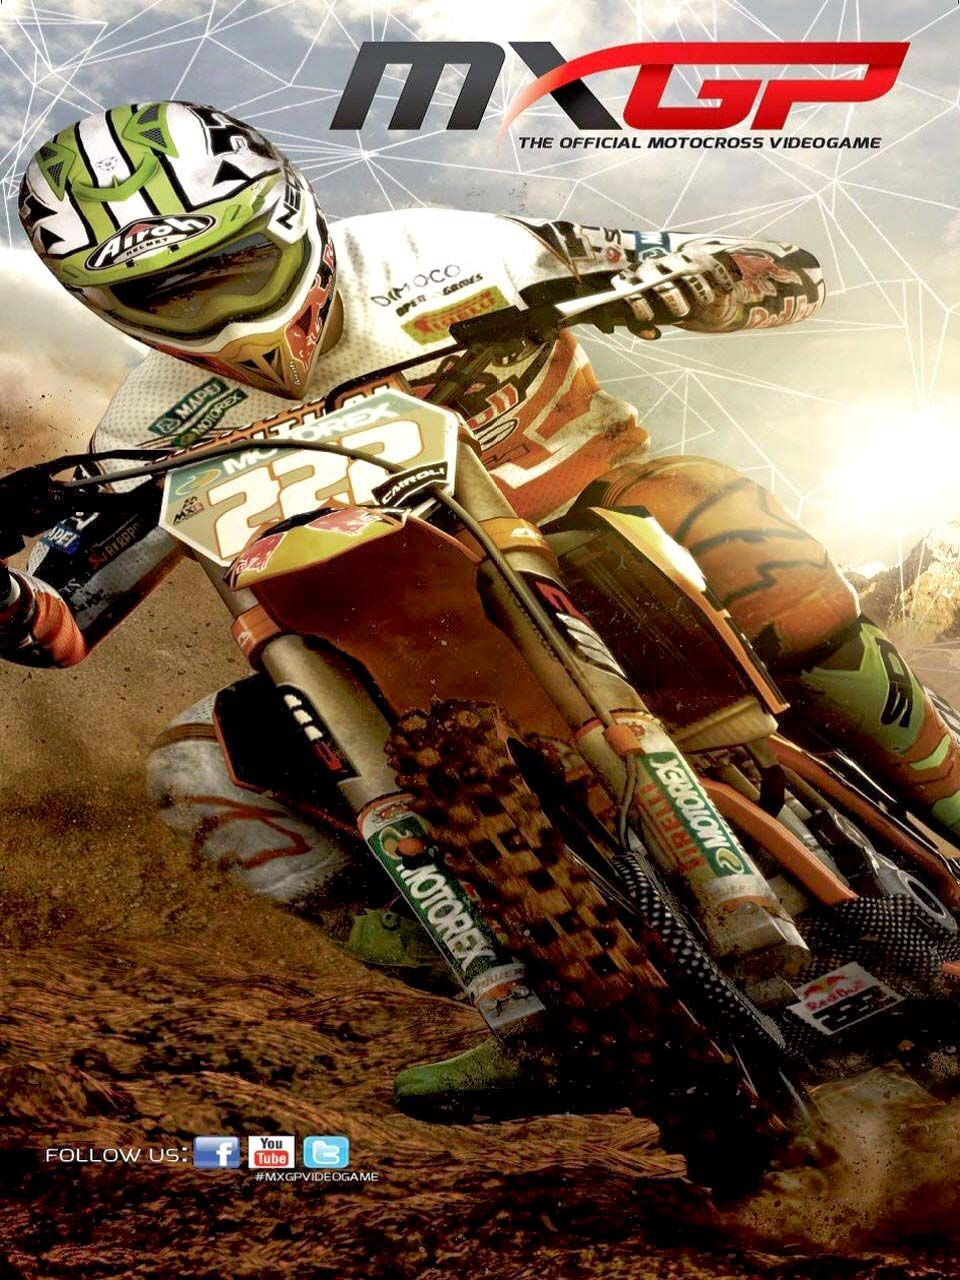 Mxgp The Official Motocross Video Game Full Version Free Download For Pc Game Codes Free Pc Games Motocross Videos